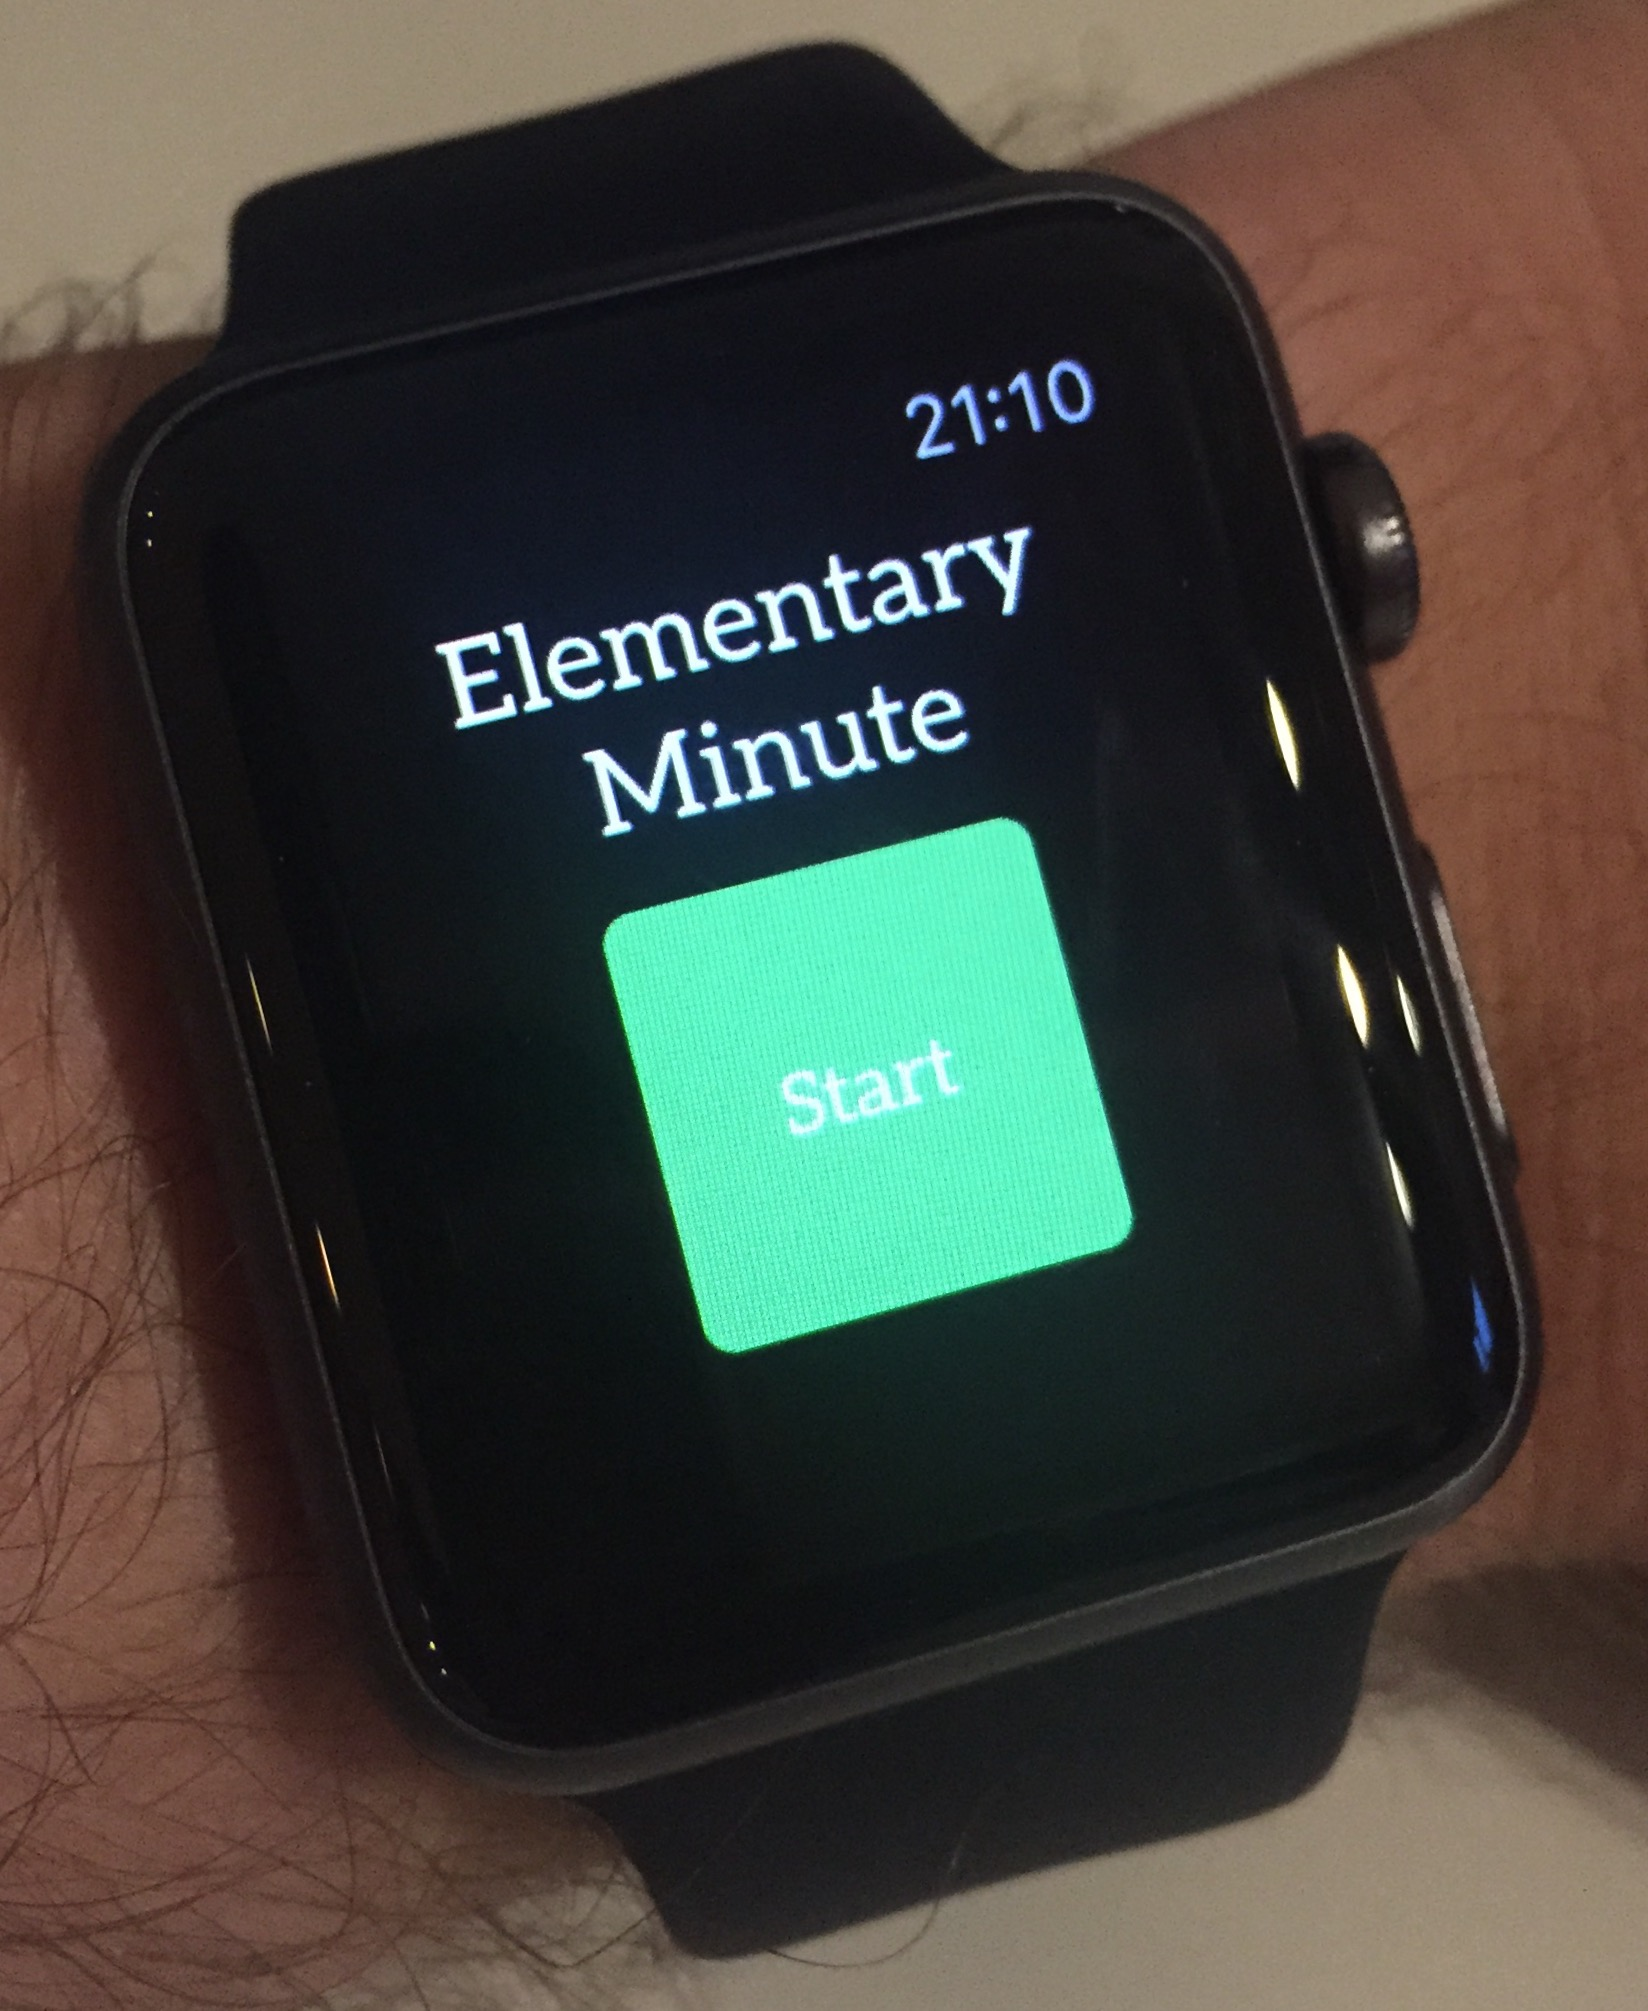 Apple Watch Elementary Minute